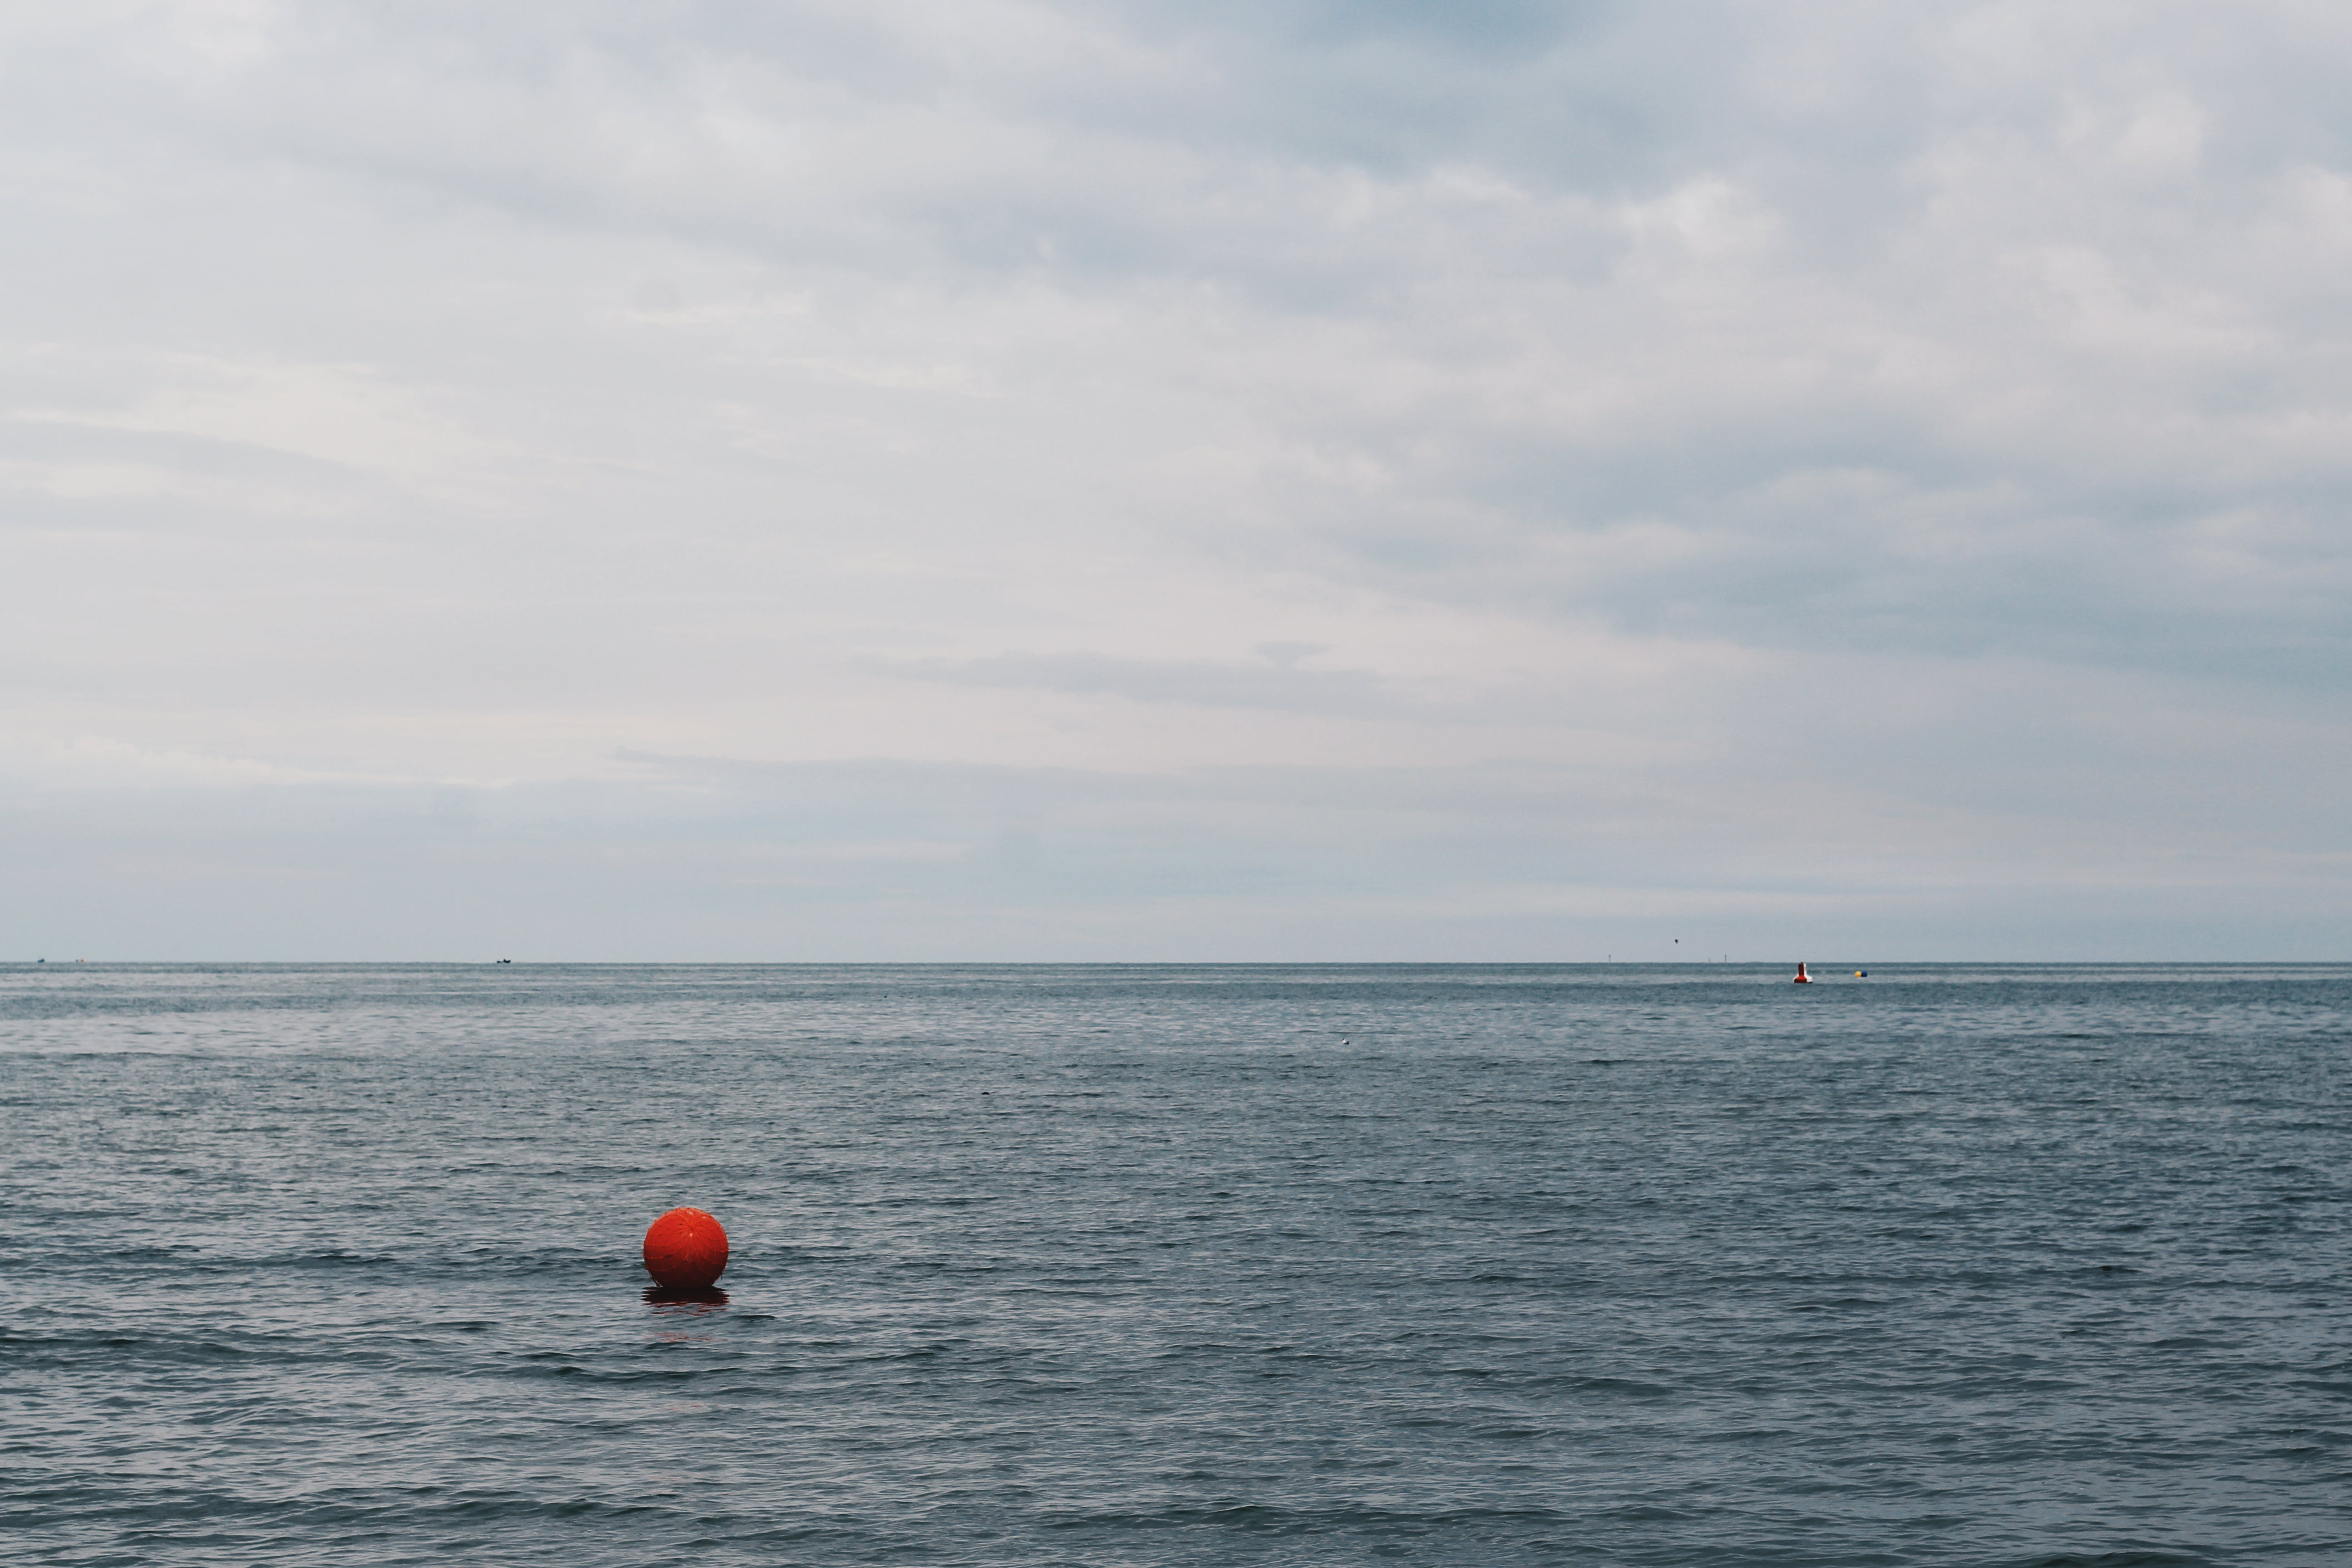 Red Buoy Floating on Body of Water